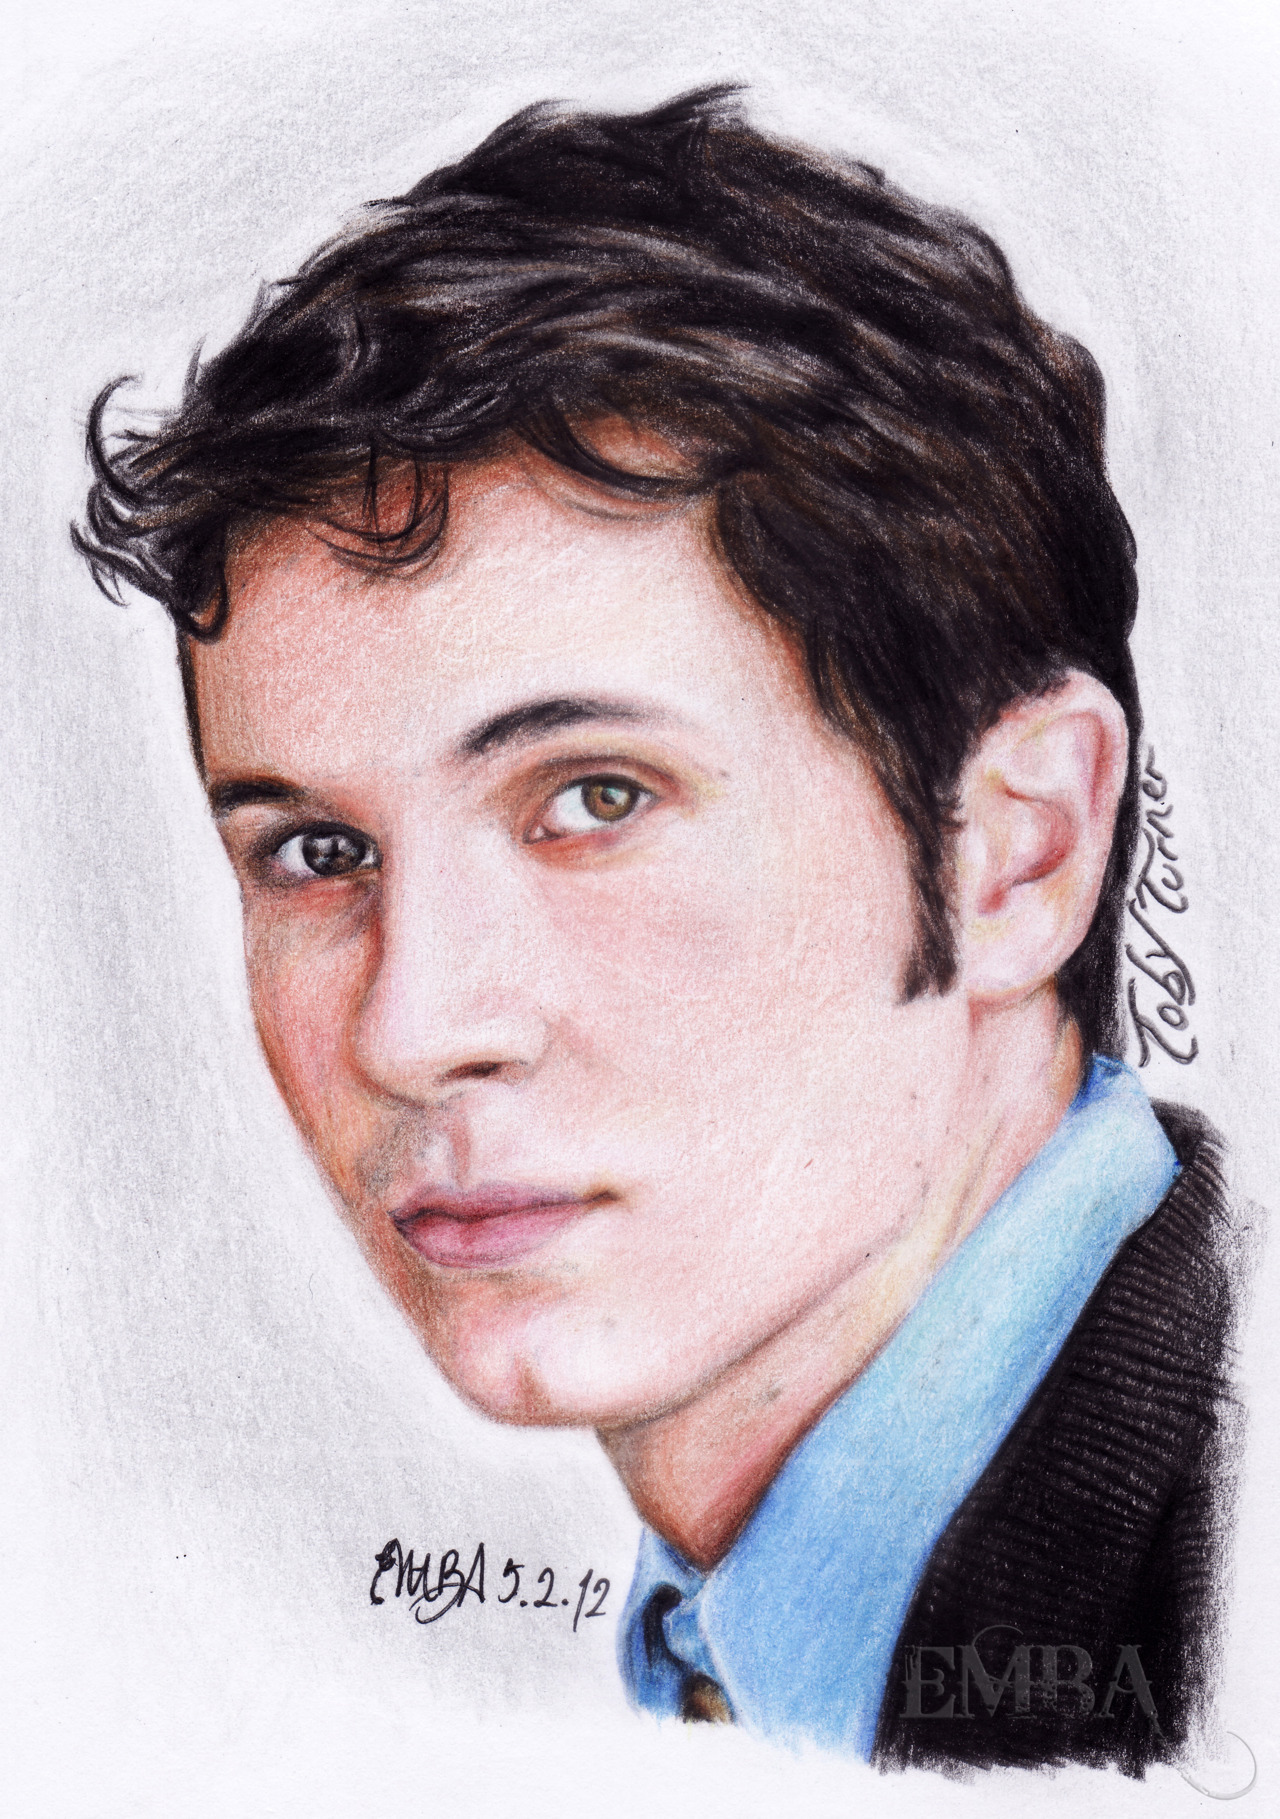 TOBUSCUS ADVANCE BIRTHDAY GIFT! @TobyTurner Finally made a proper drawing of Toby Turner(after drawing him last year on a smartphone, link - http://bit.ly/xbcfLV )February 2012Sooo yep, because Toby's awesome I drew him in color pencils for his birthday!I decided to post this in advance before he gets even more flooded with tweets and messages and whatnots on his birthday next month ._. Hoping so much for Toby to see it!Could anybody please Tweet this to him or something? Much love! <3